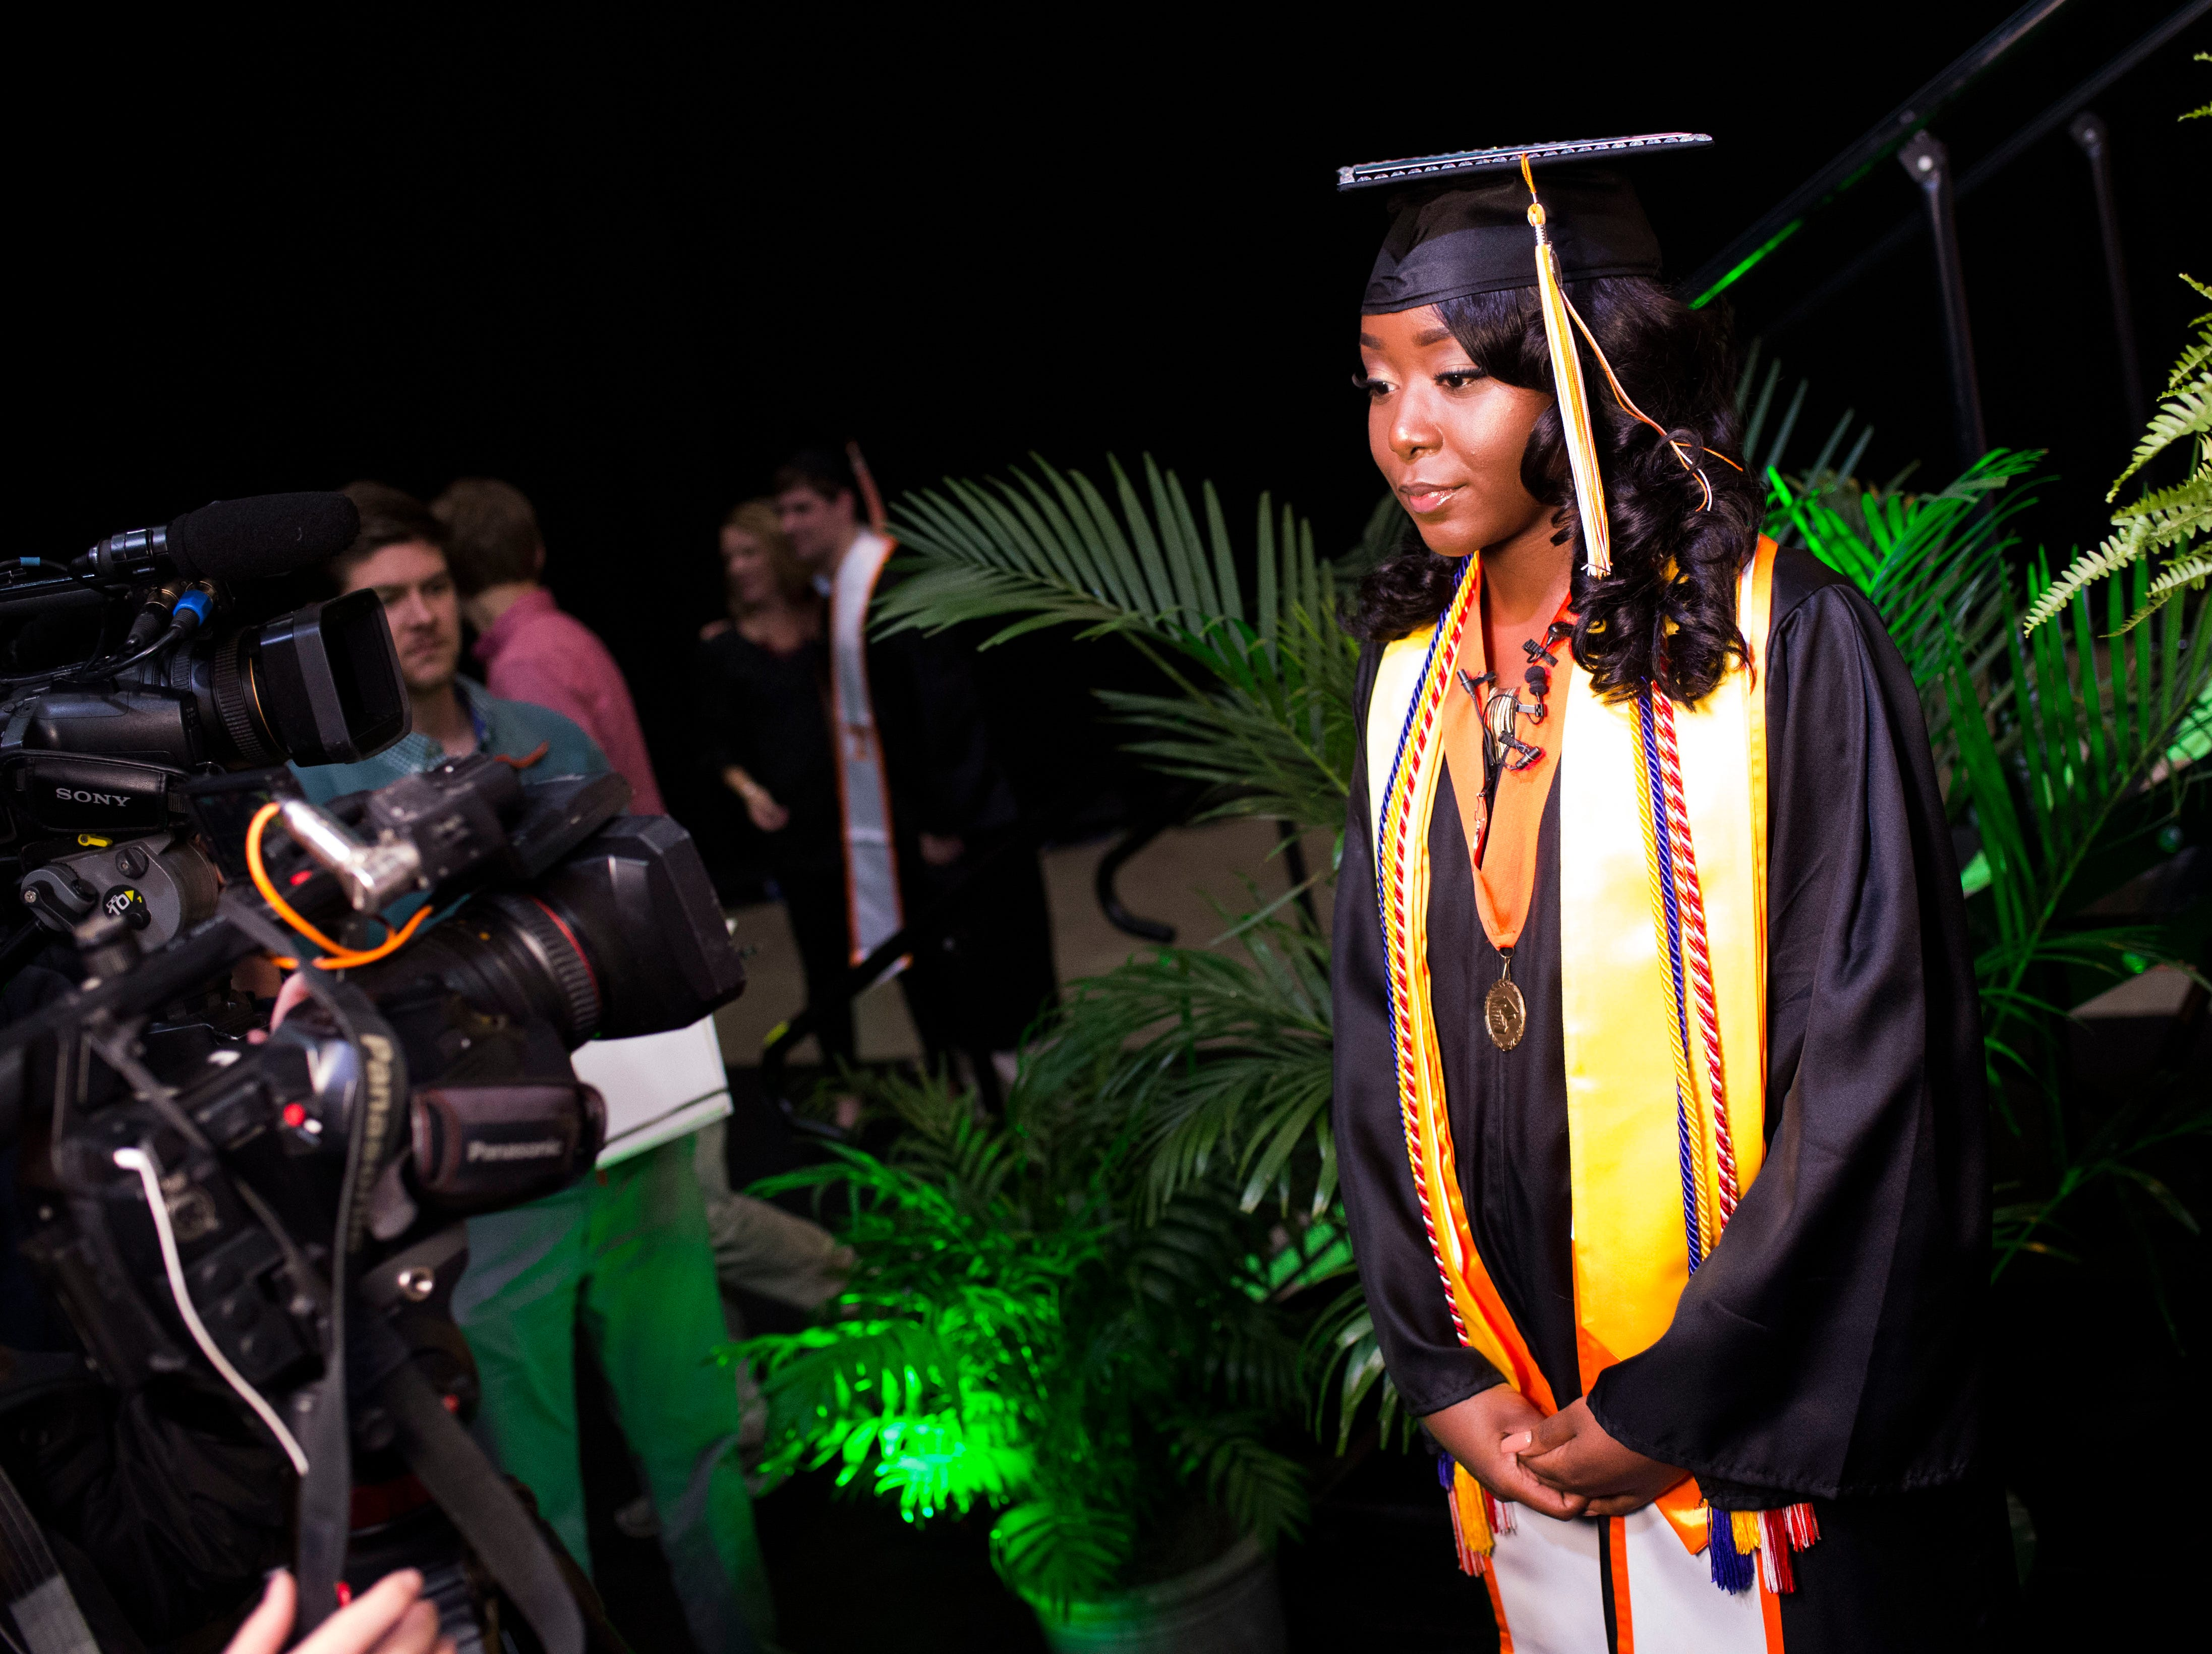 Amaya Linsey speaks to the media after University of Tennessee's graduation in Thompson-Boling Arena Friday, Dec. 14, 2018. Her brother, Airman Jerald Linsey Jr., whom she had not seen in a year, surprised her after she crossed the stage to receive her diploma.